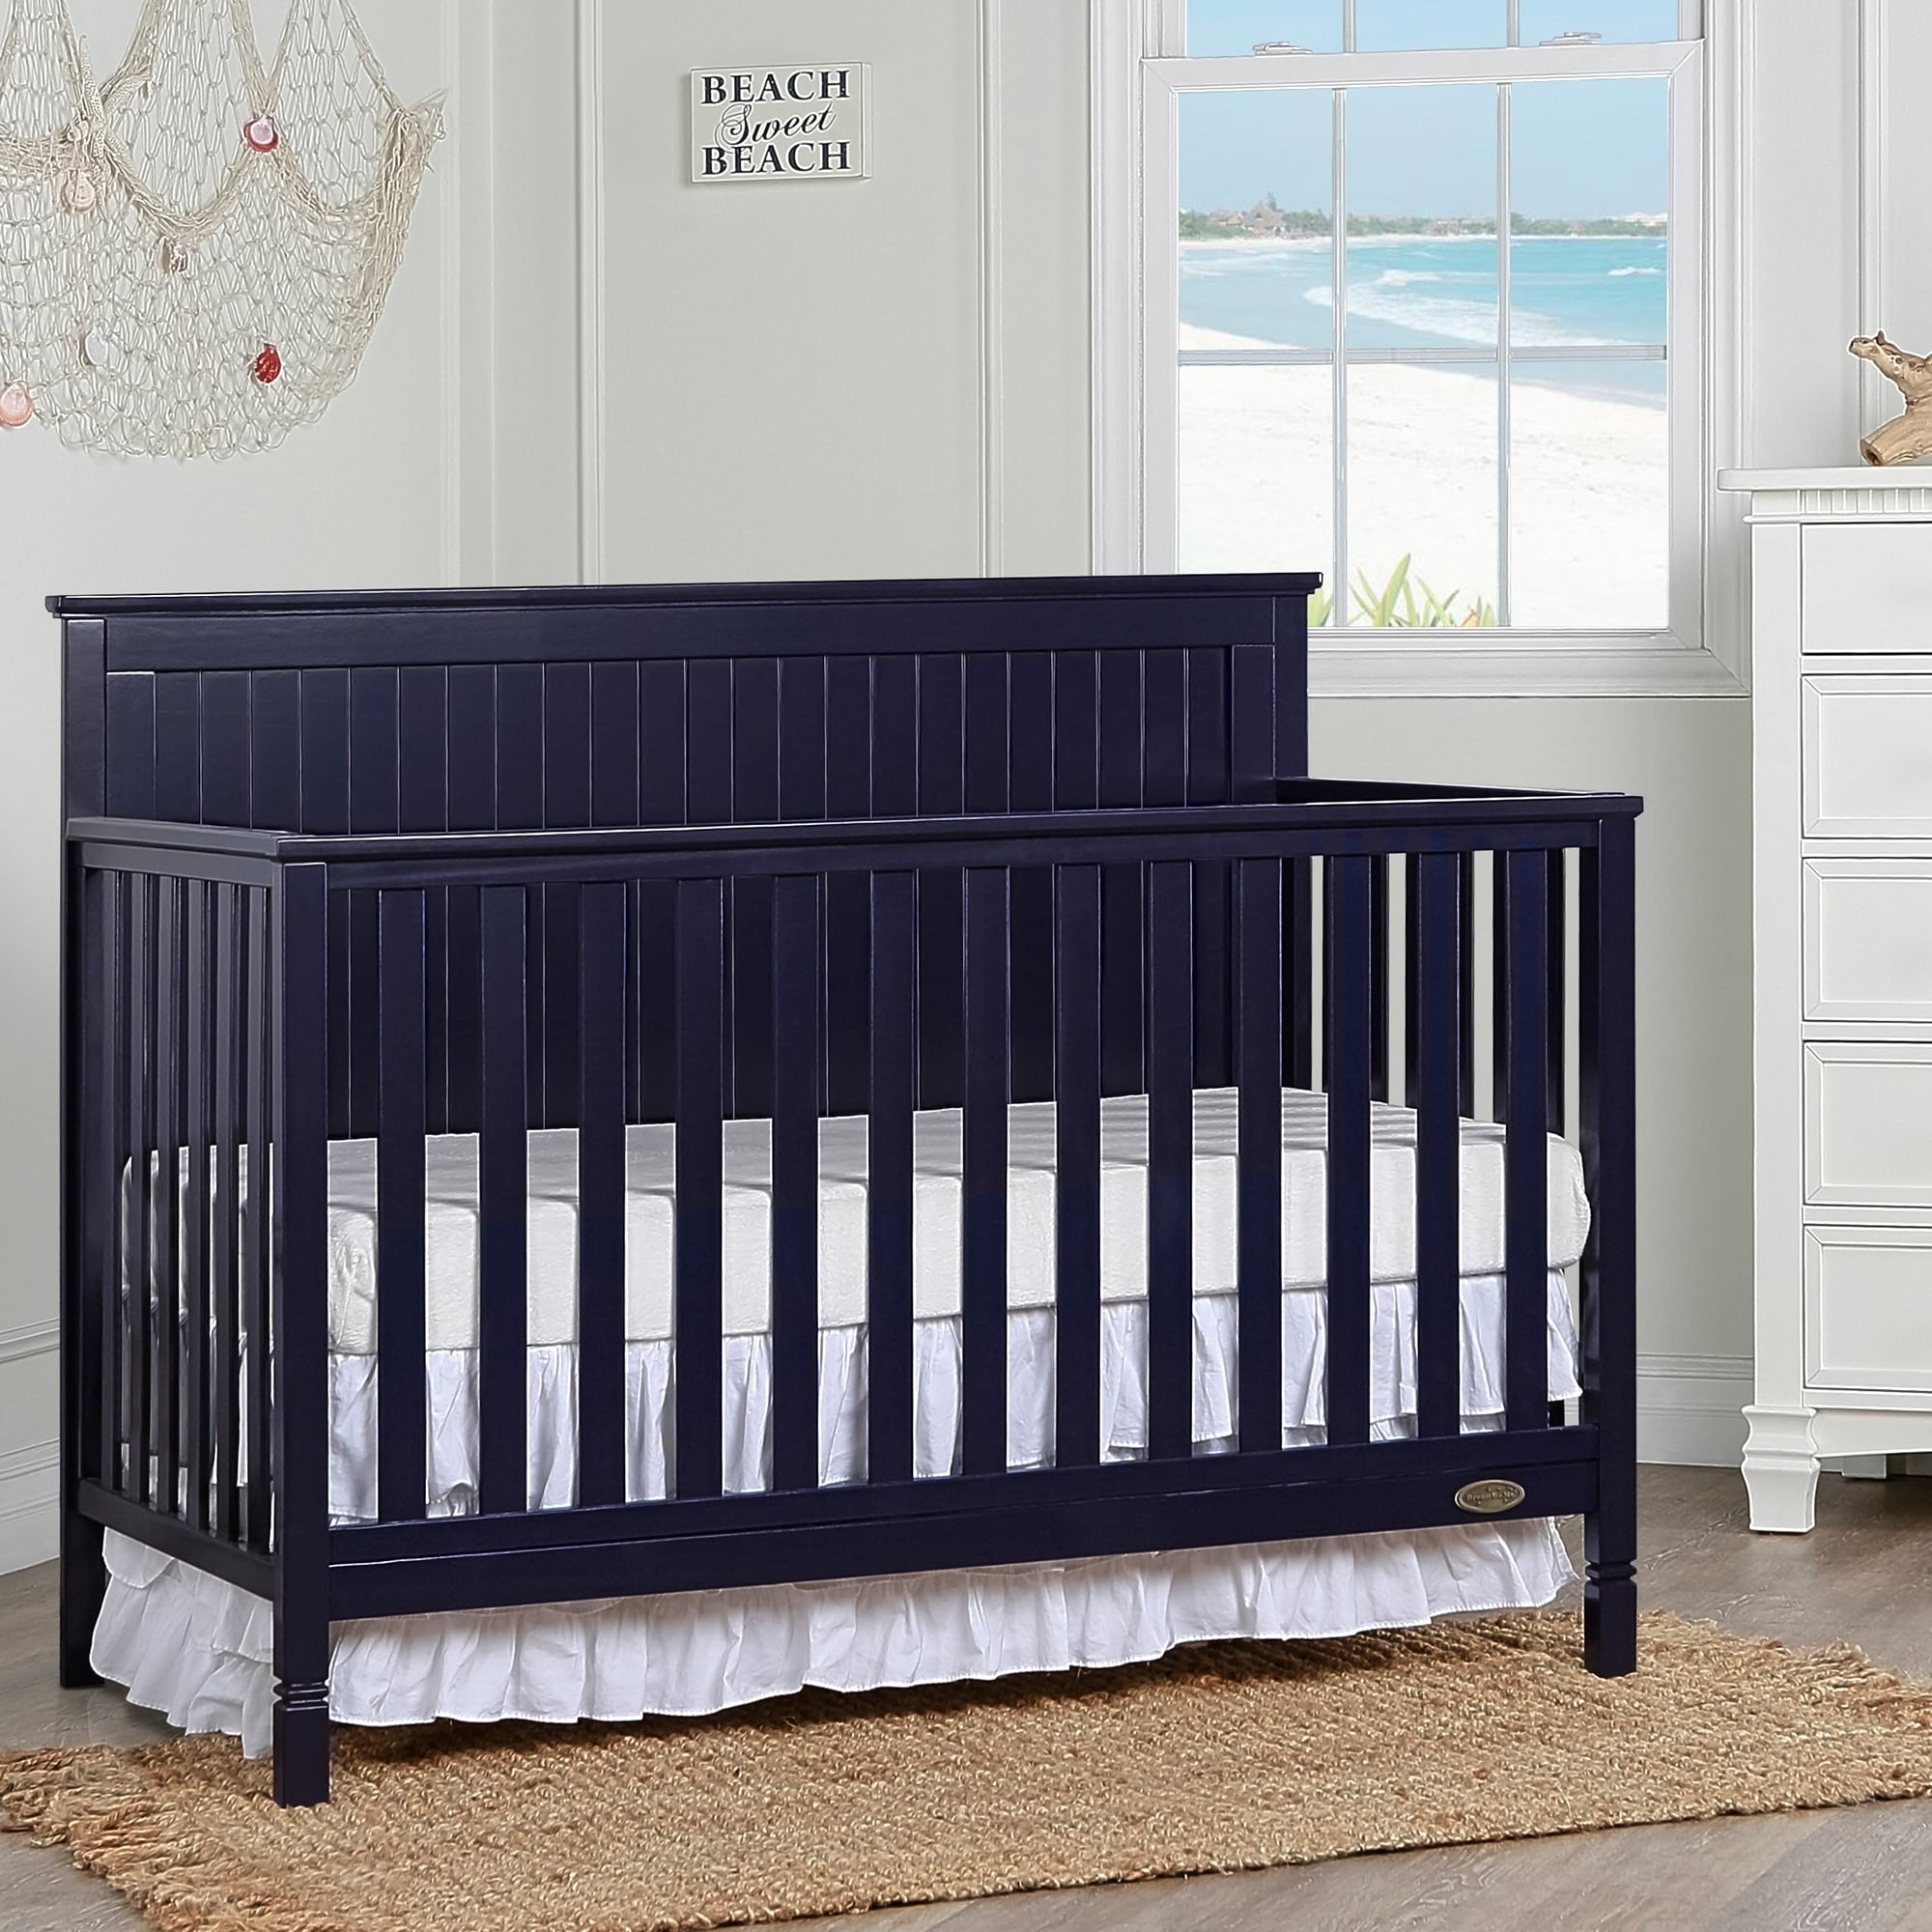 lisa on me portable level full serenity cribs affordable awesome folding two convertible or with size dream crib mini baby